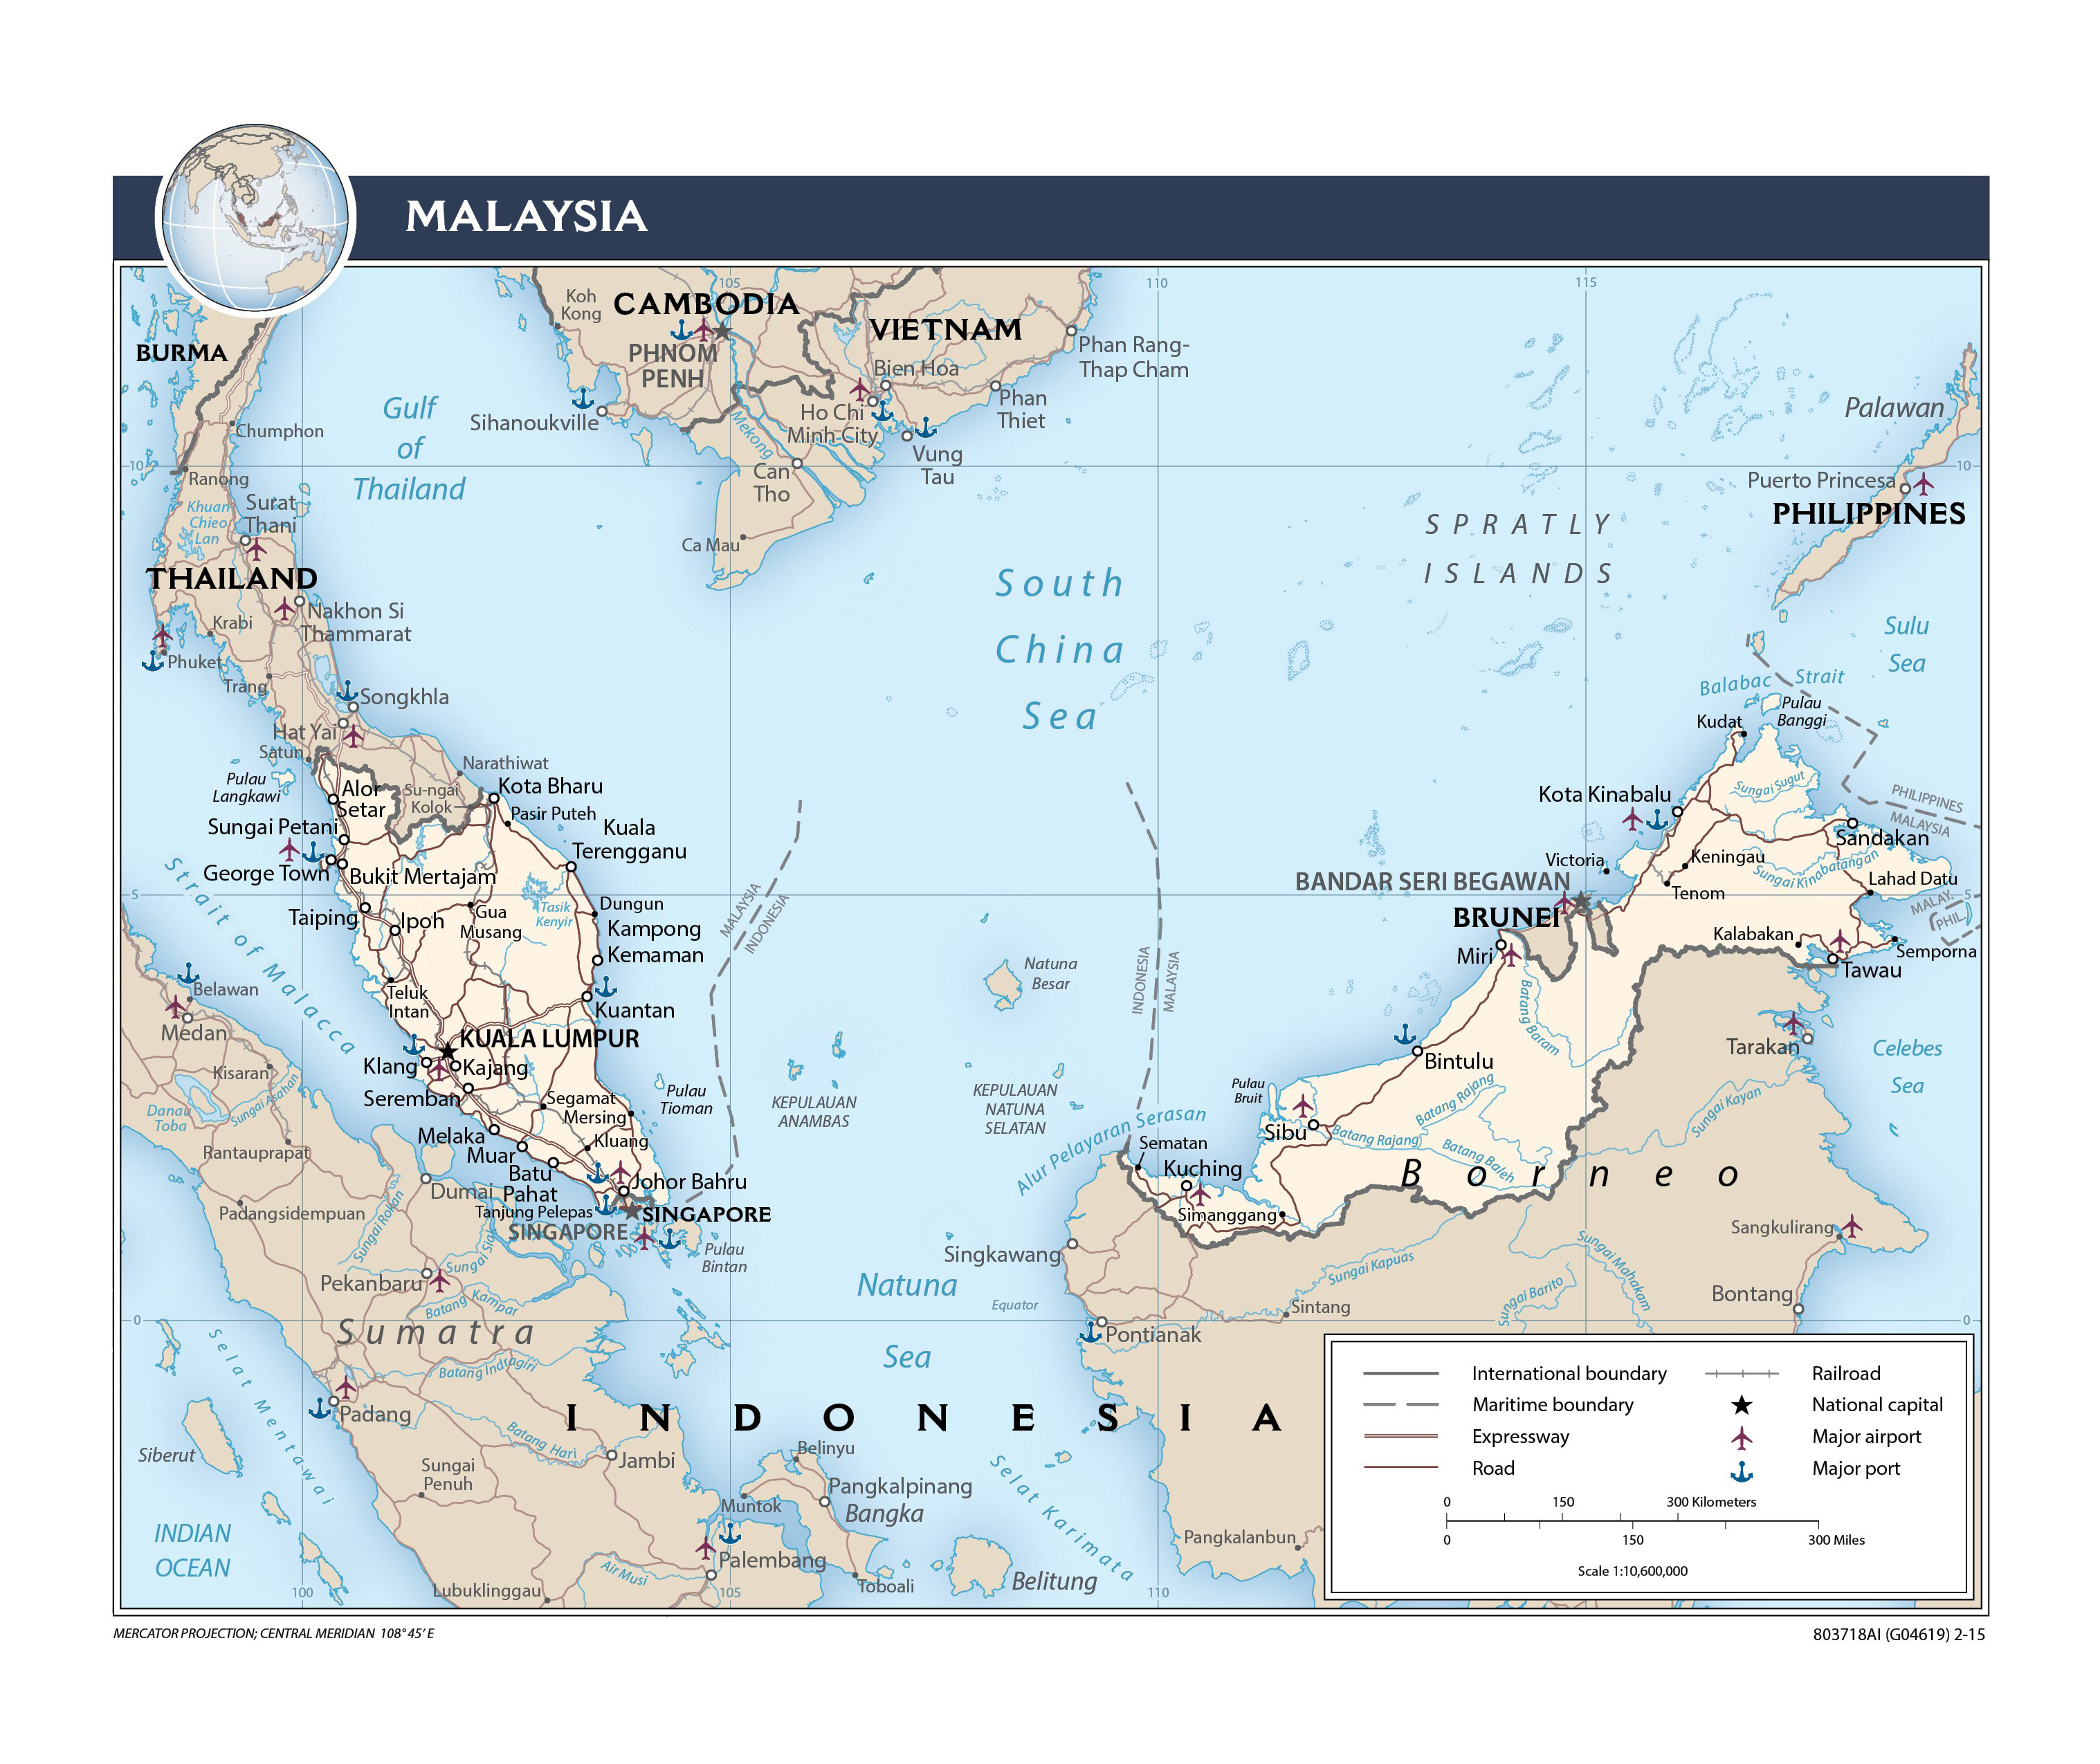 Large detailed political map of Malaysia with roads railroads